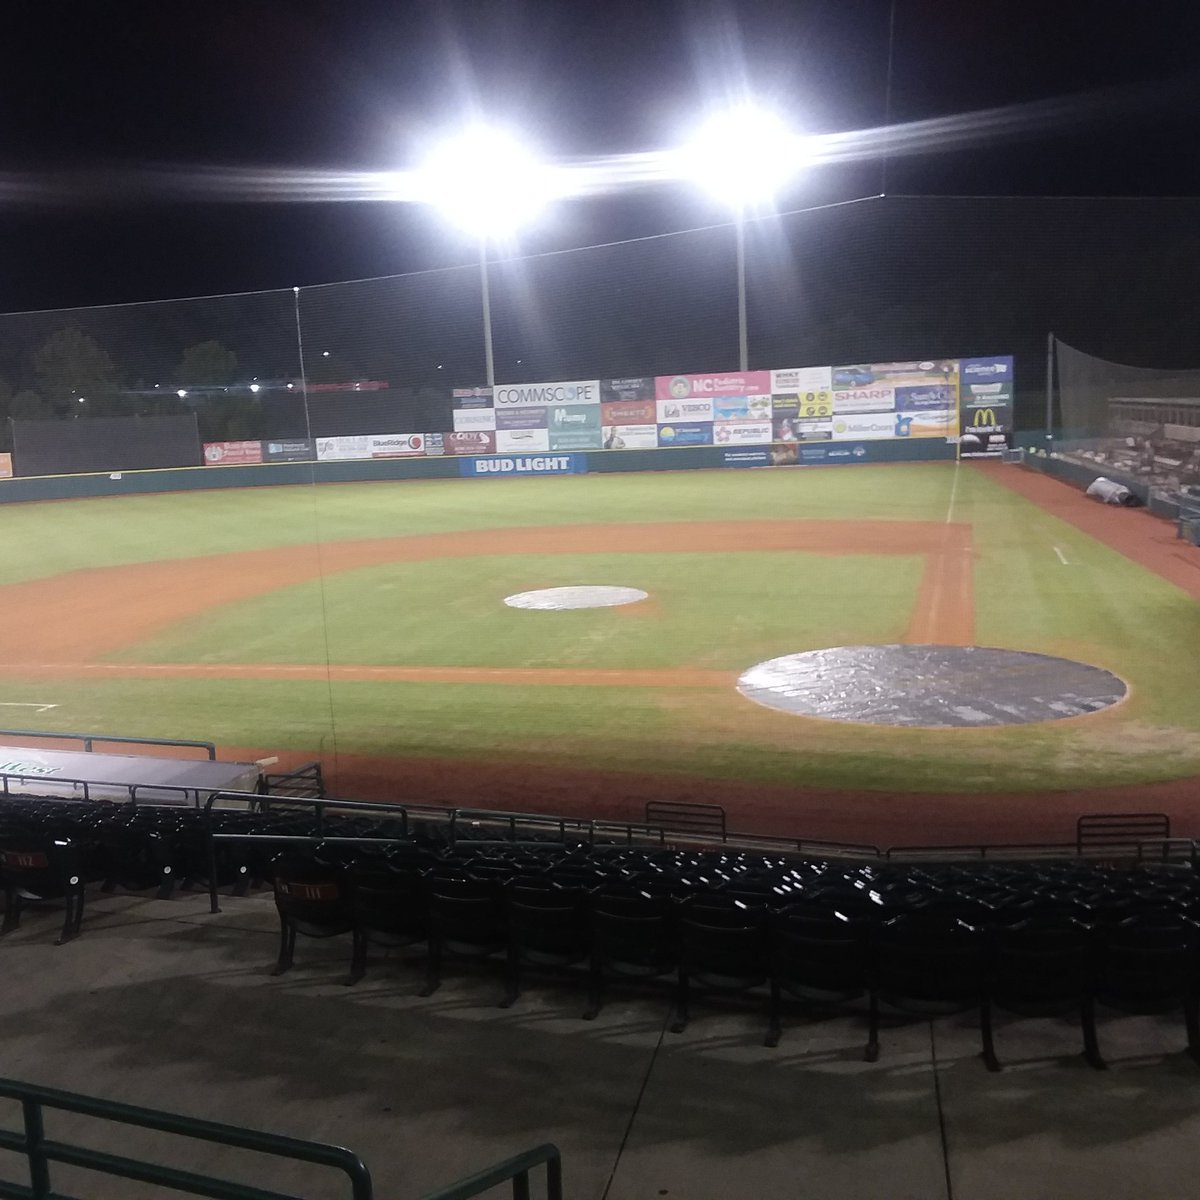 Something about an empty ballpark at night. I love this place!! My #homeawayfromhome! @HickoryCrawdads #dadsin18<br>http://pic.twitter.com/ceRFIZ52do